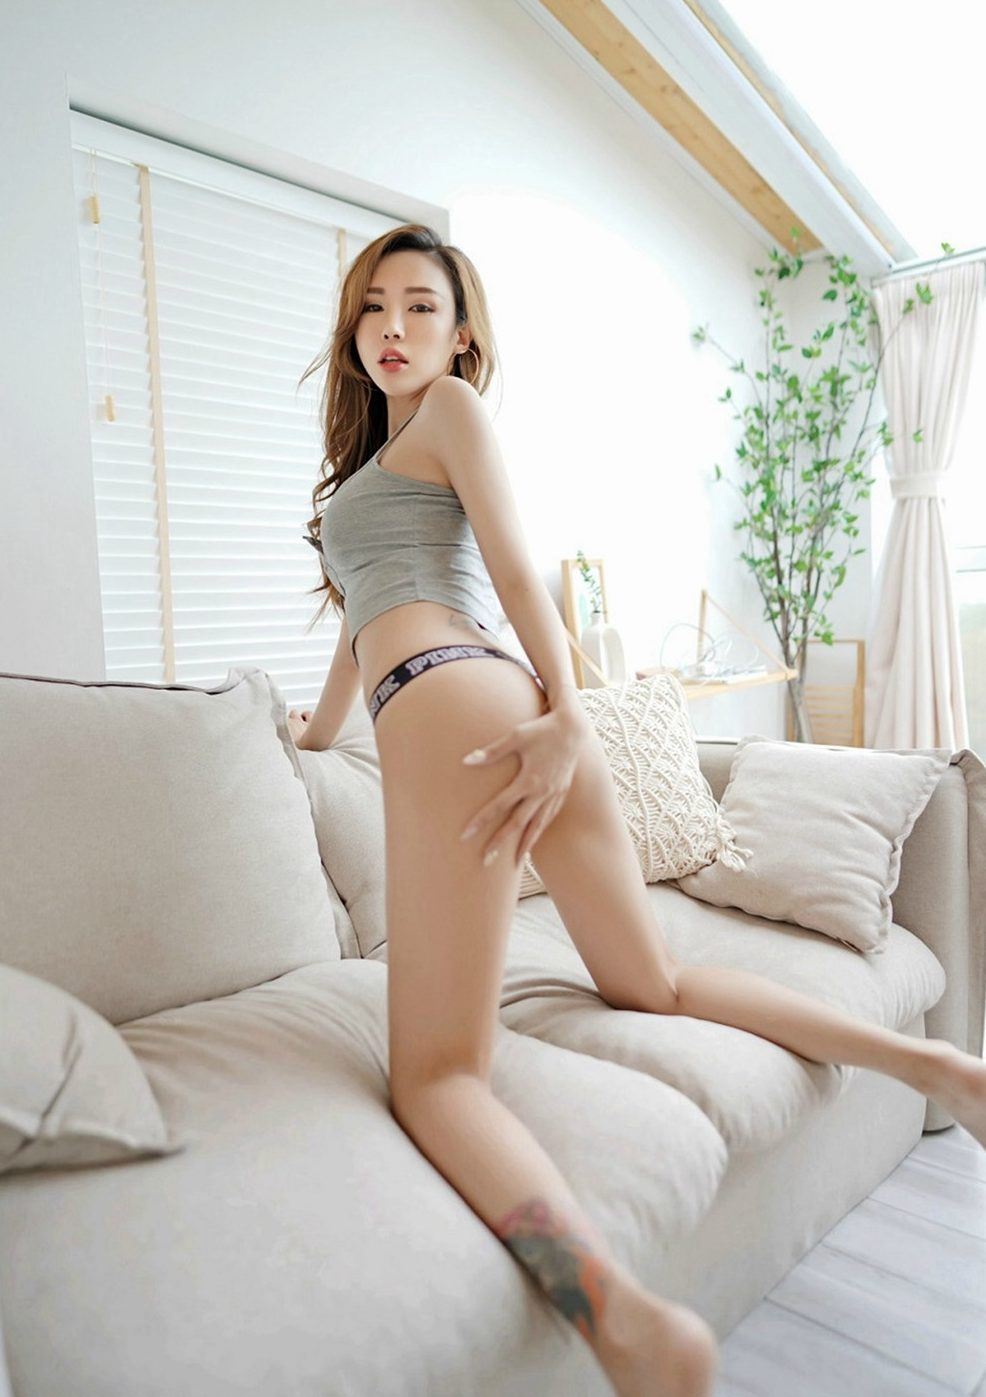 xxx photos: fall inlove with this super hot asian girl